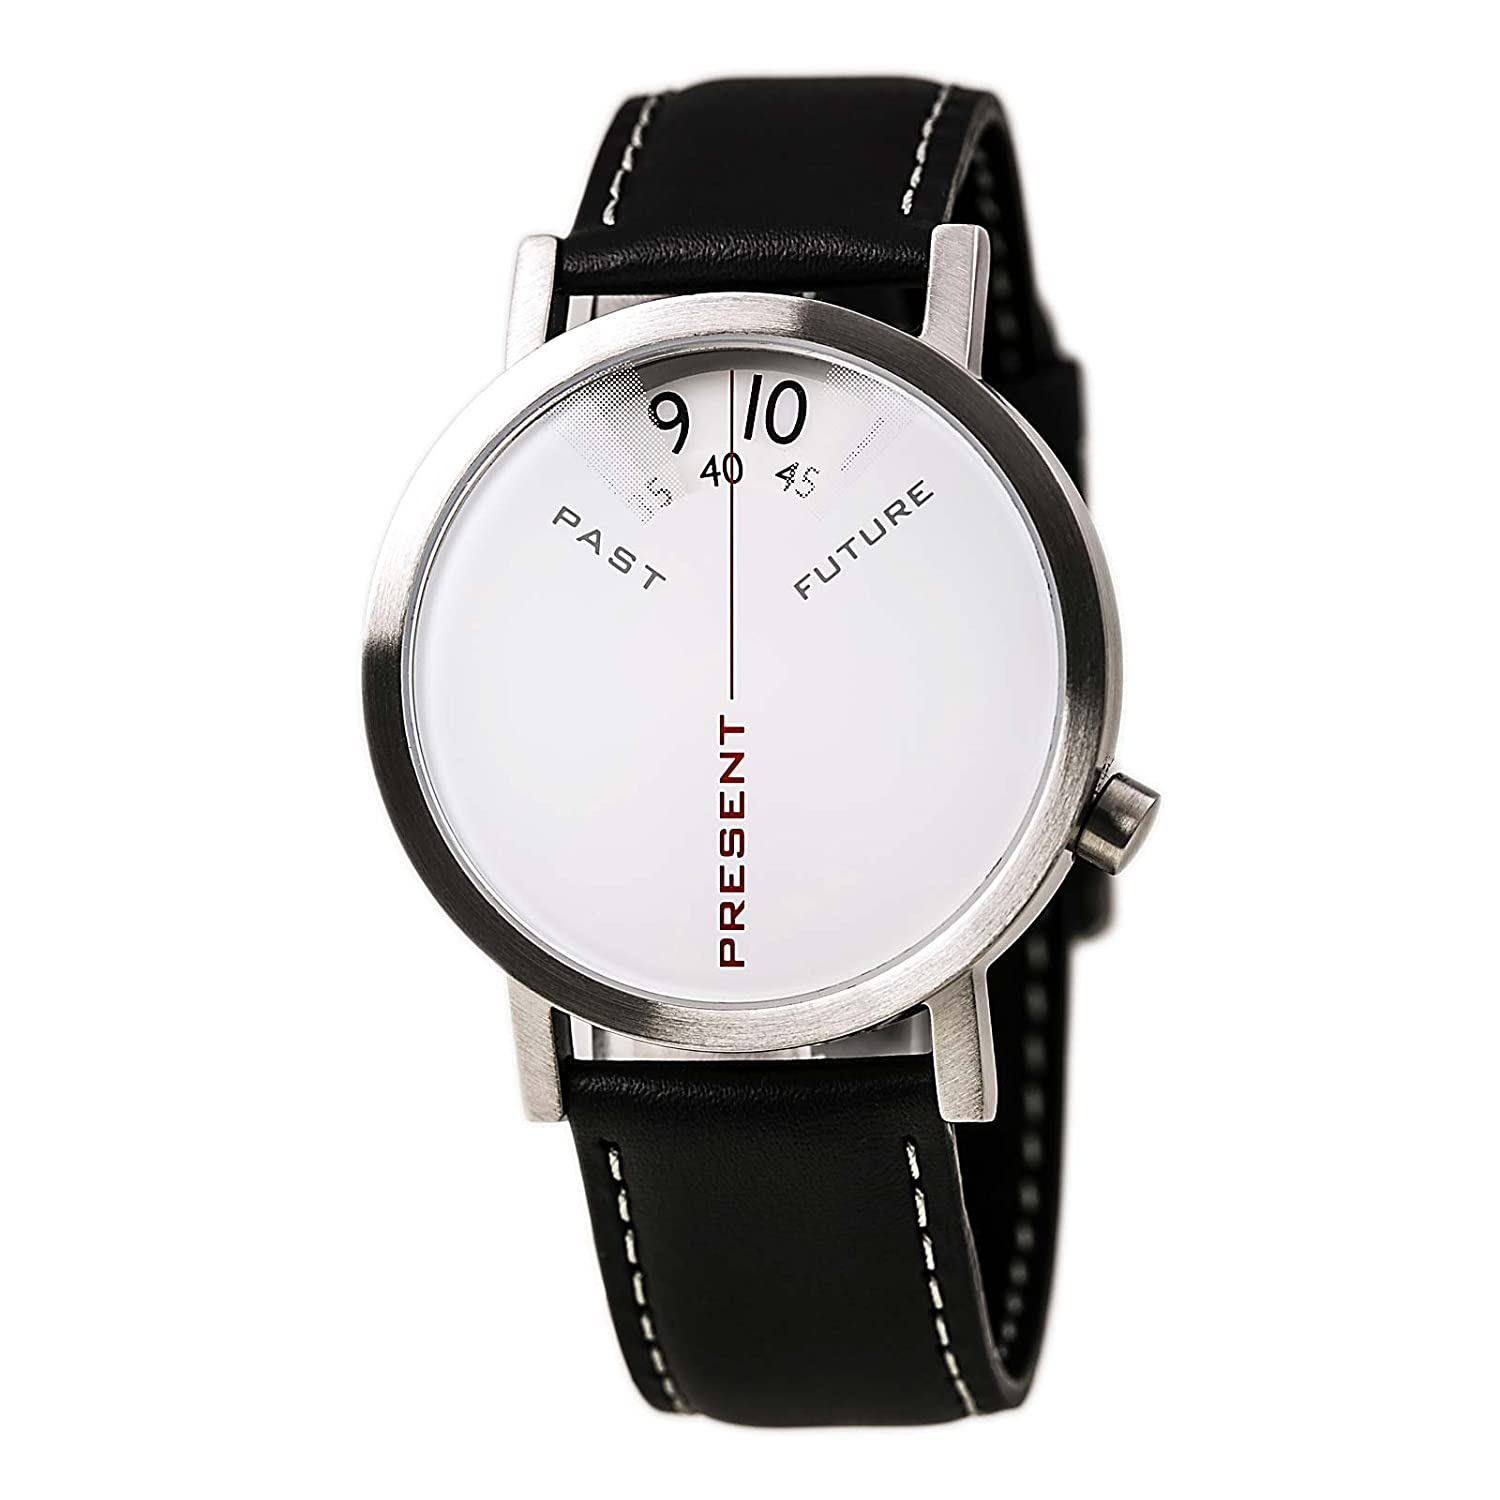 Projects Watch - Past - Present - Future - Silver-Leather (40mm)